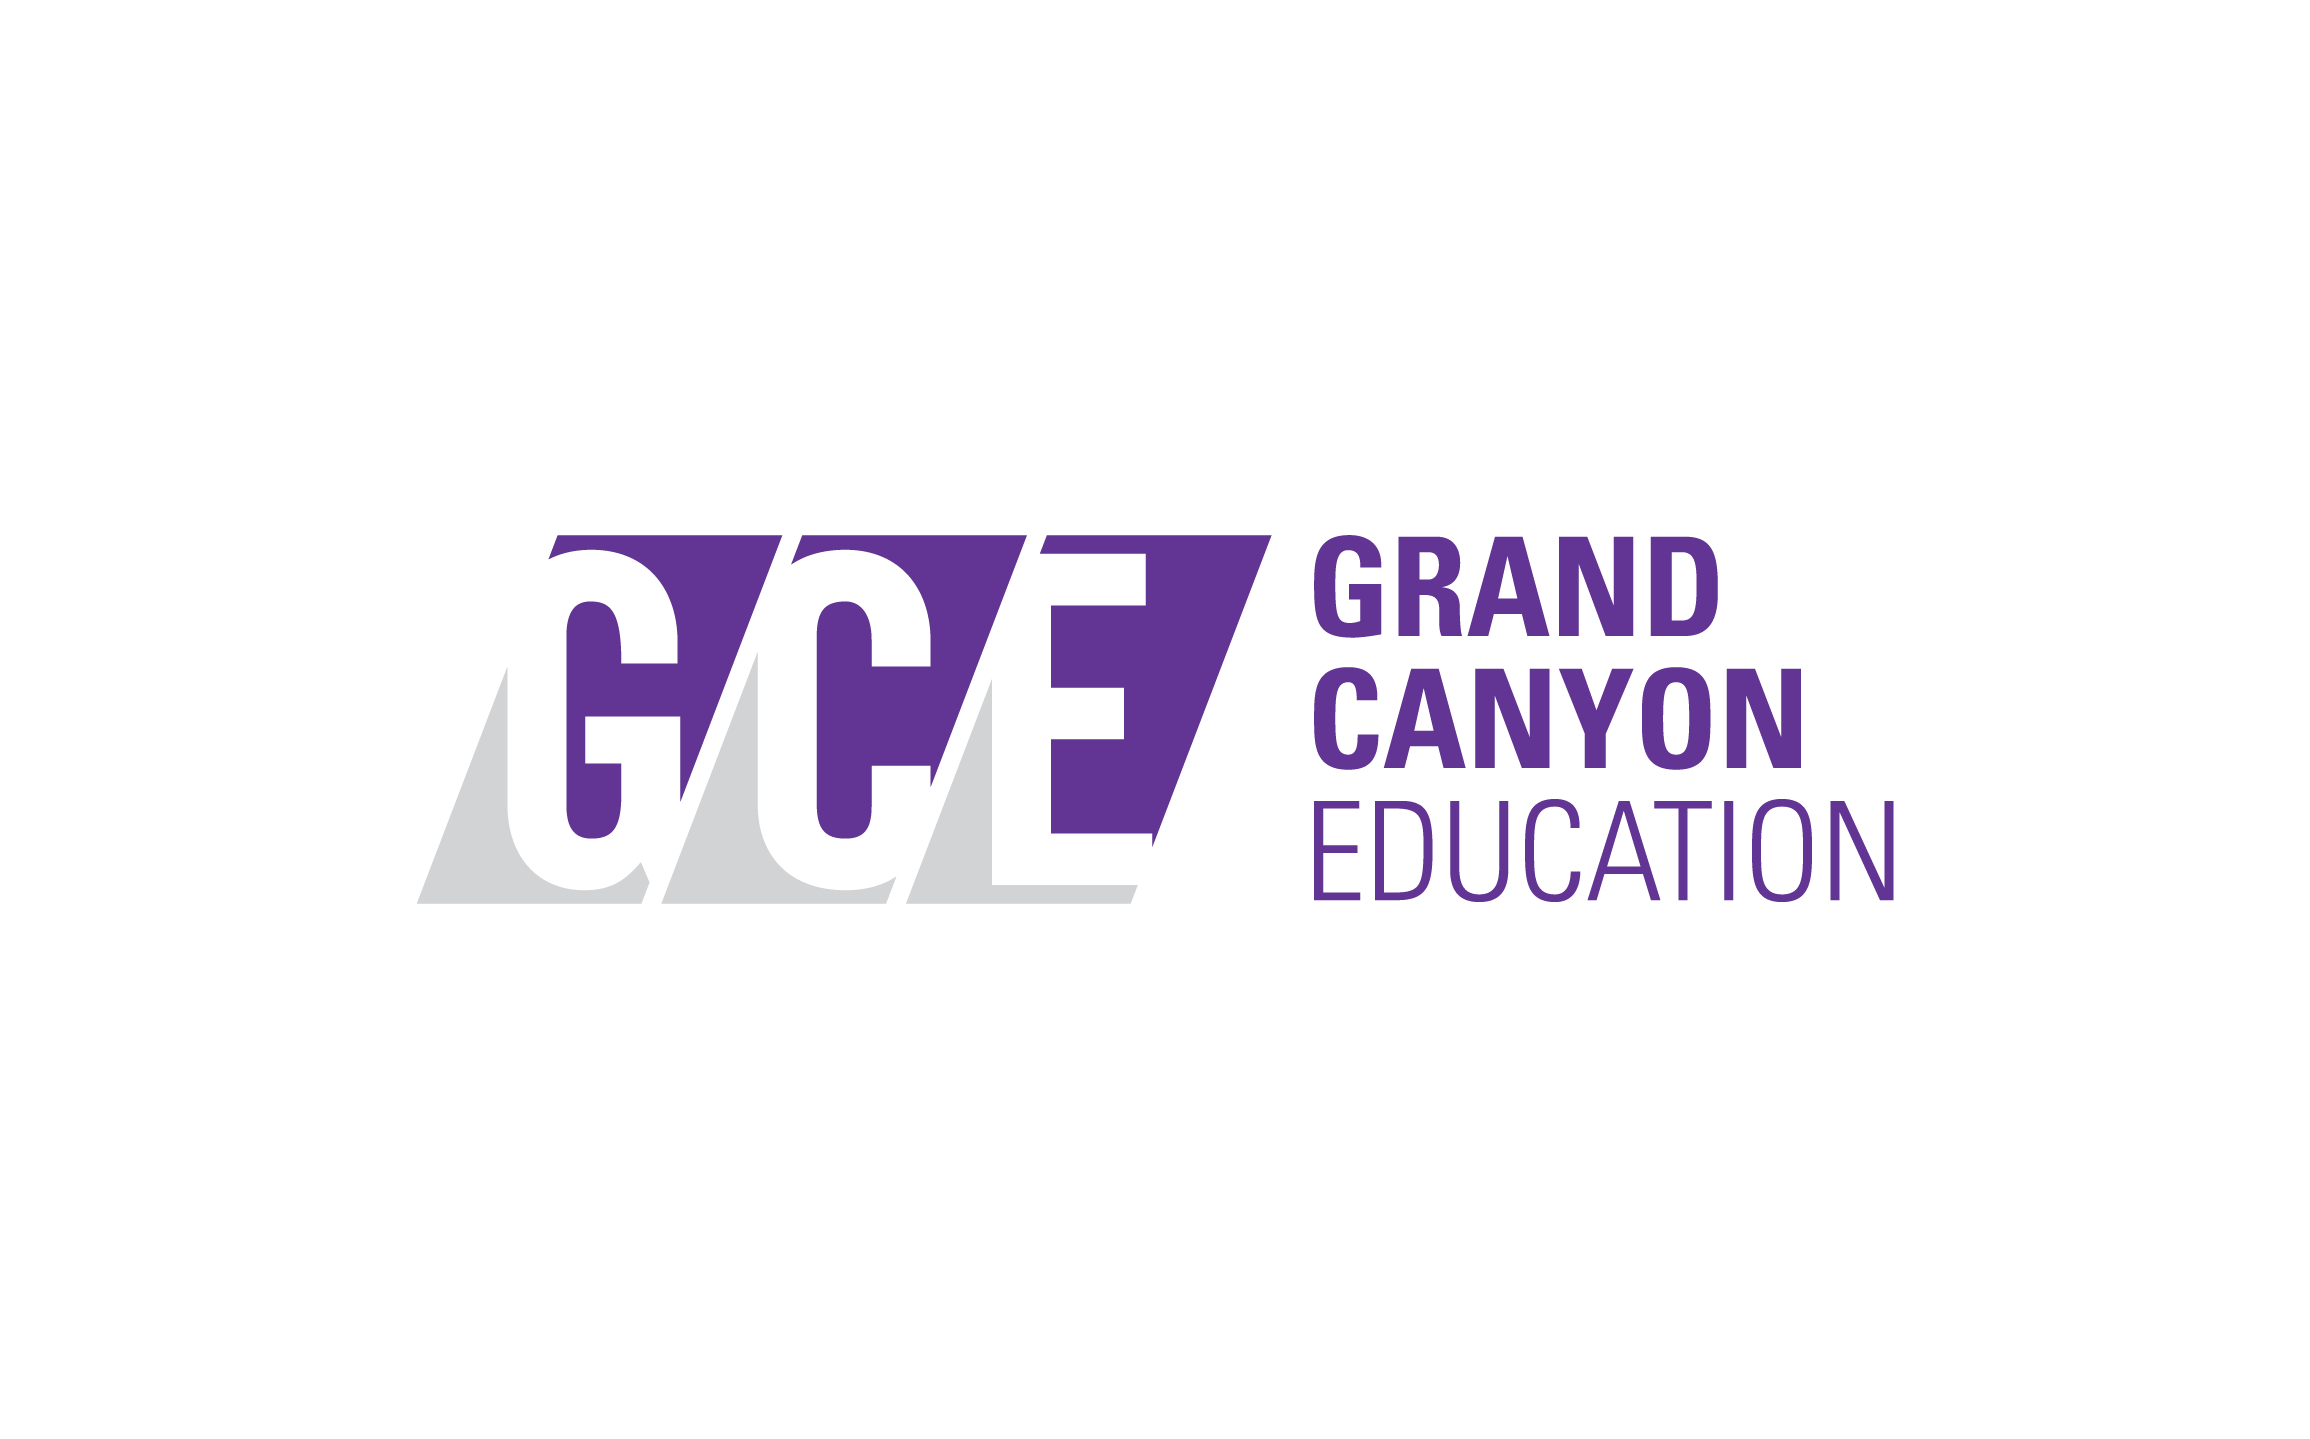 Grand Canyon Education